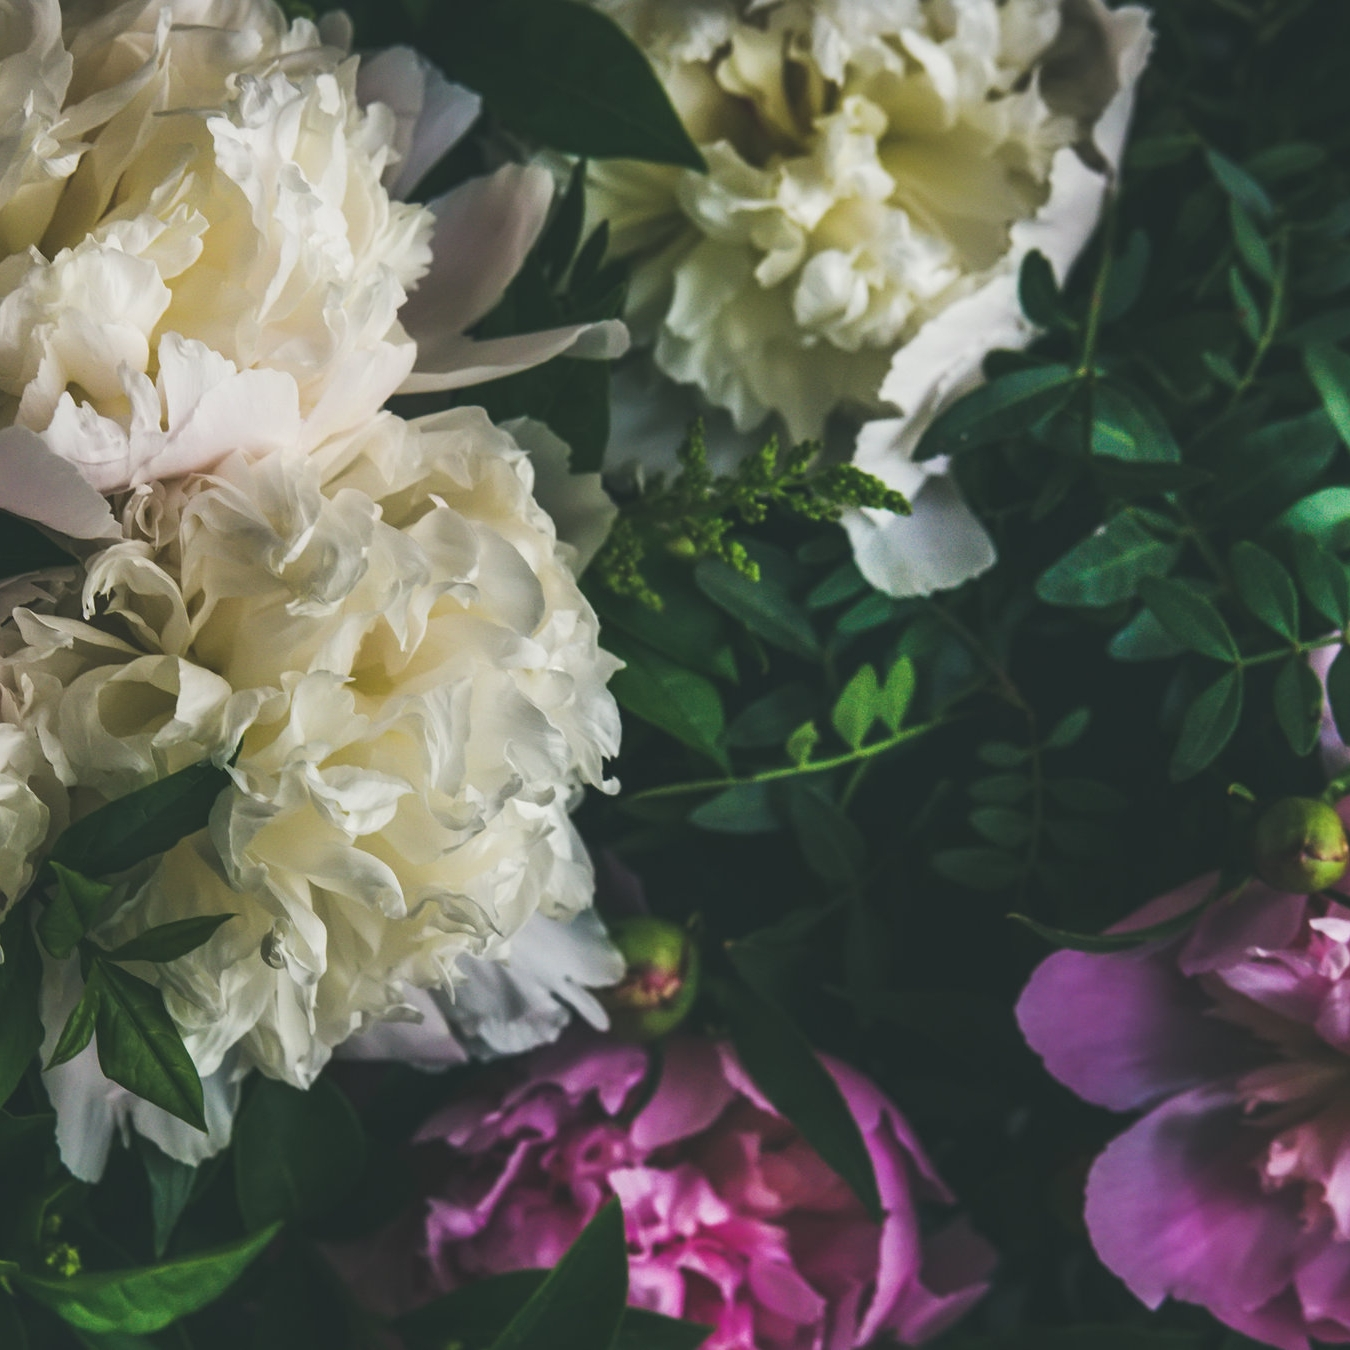 white-and-pink-peony-flowers-over-dark-background-PK3GN4M.jpg